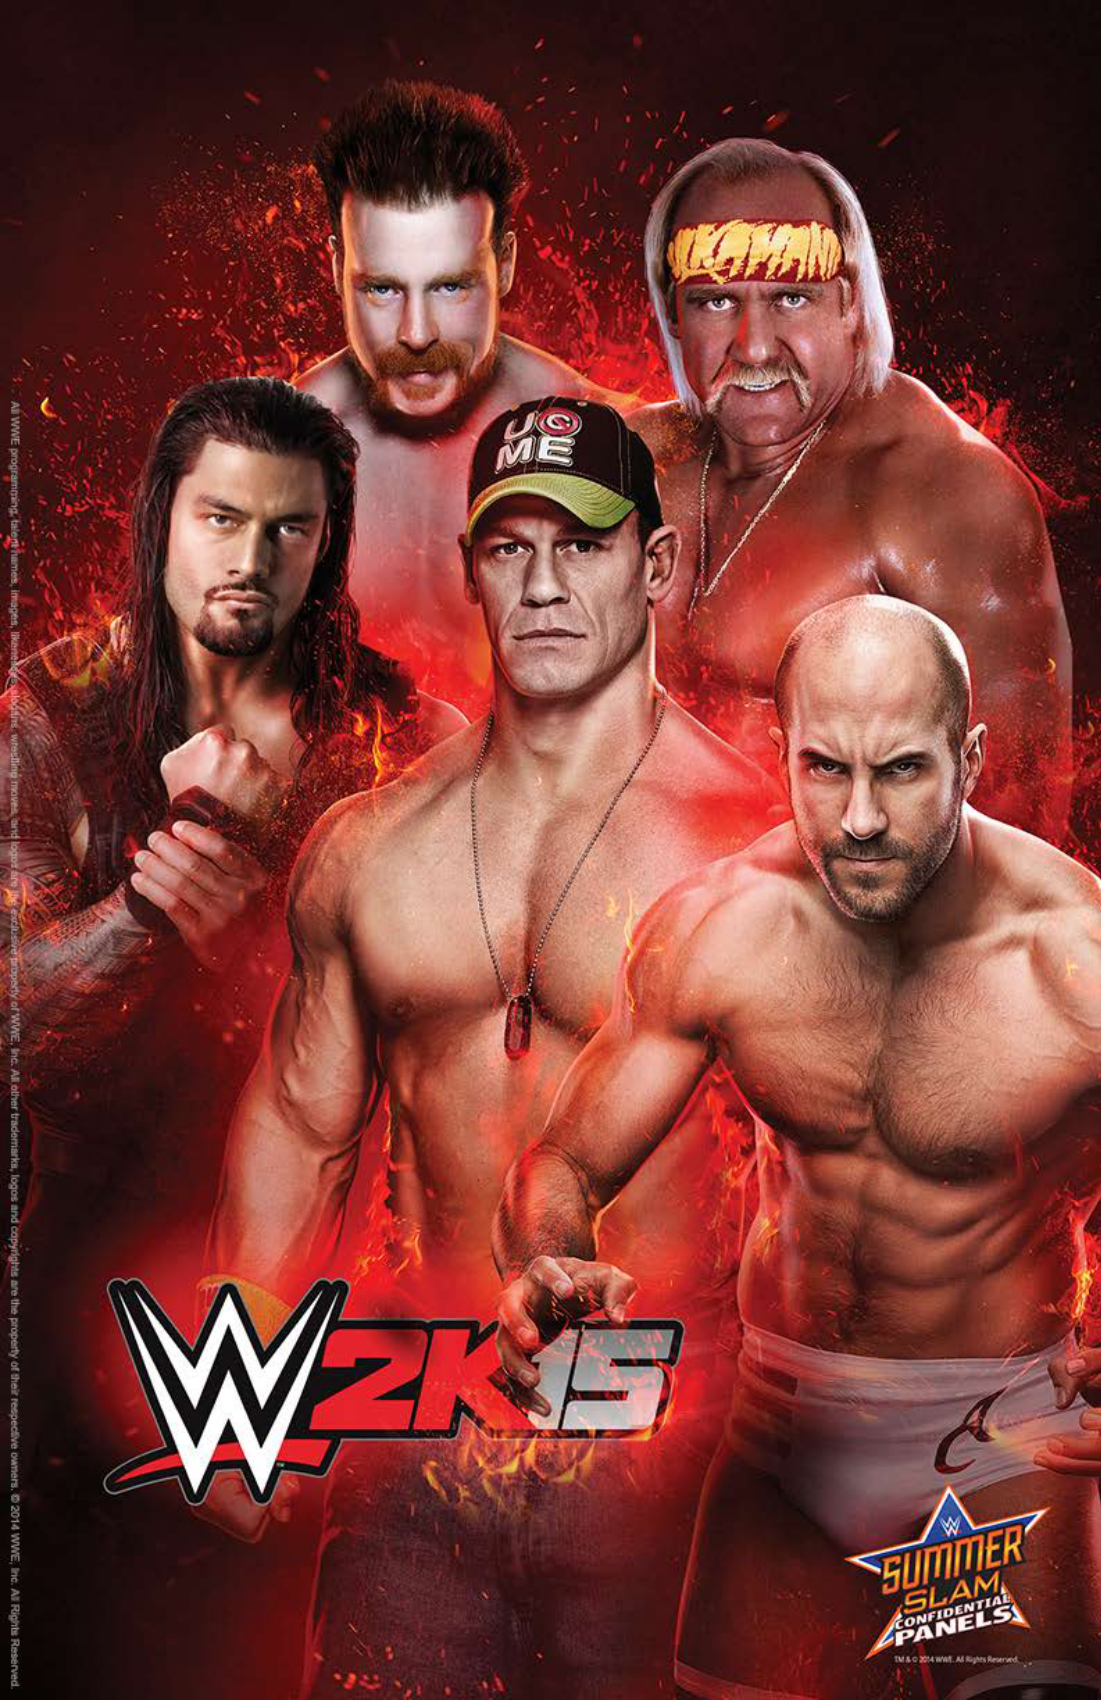 wwe_2k15_summer_slam_poster_by_thexrealx